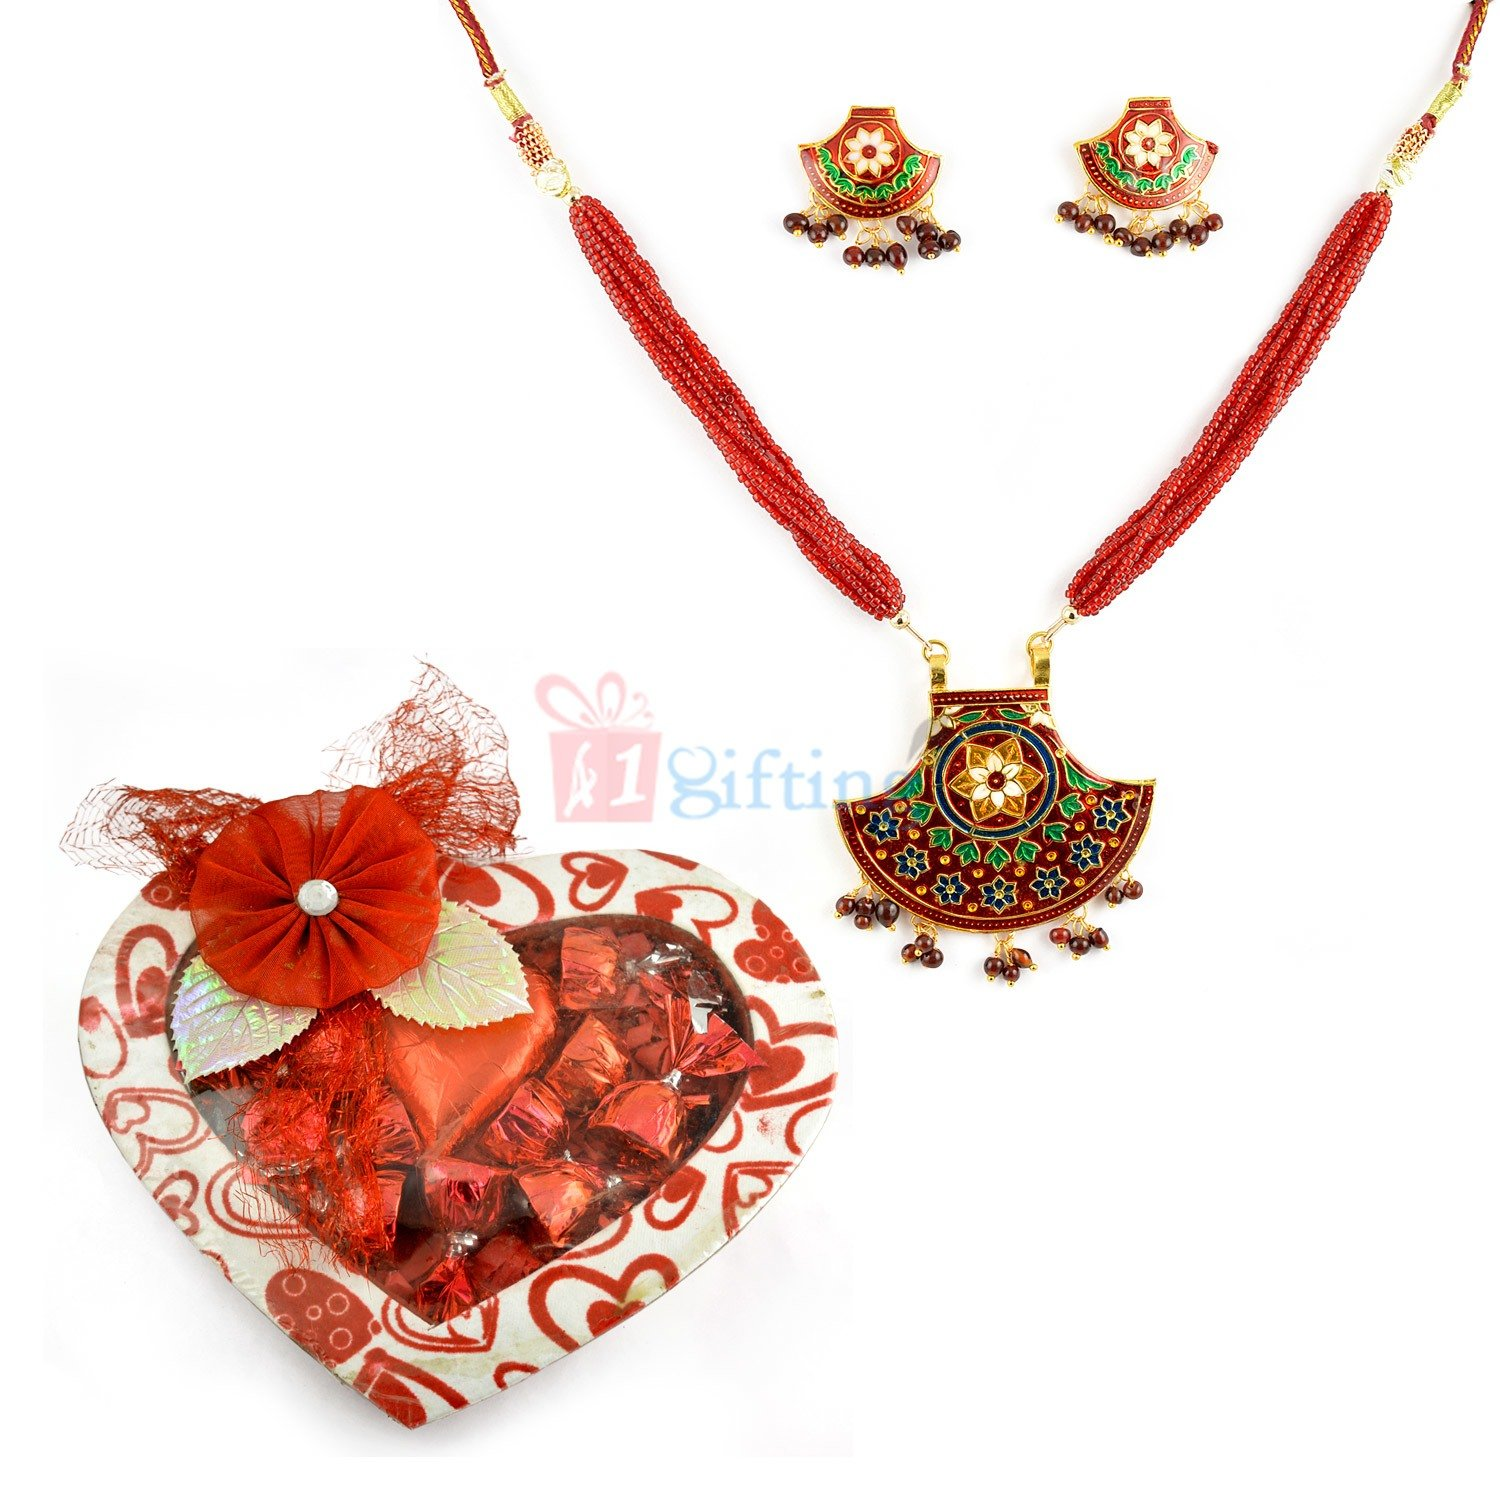 Amazing Jewellery with Heart Chocolate Gift